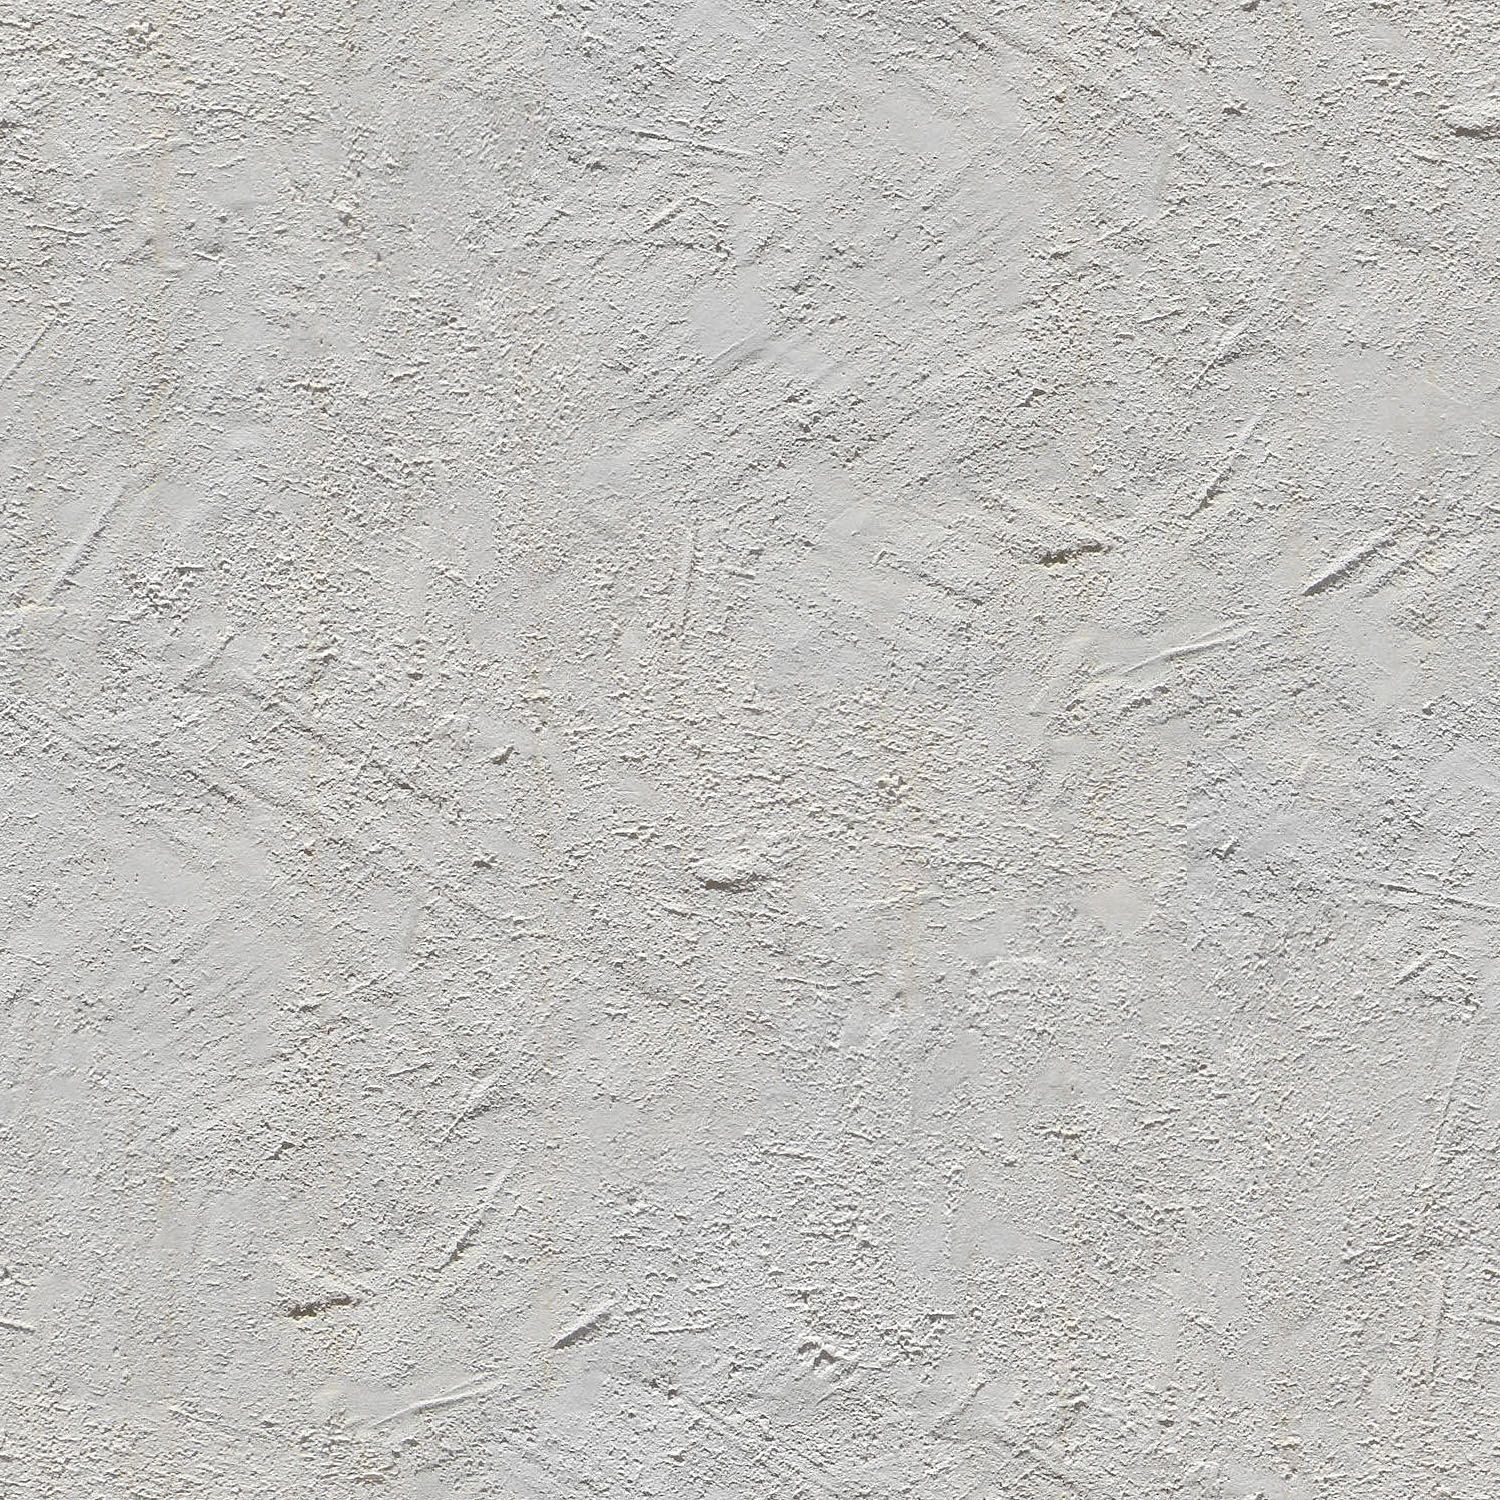 Tileable Stucco Plaster Wall Maps Plaster Texture Stucco